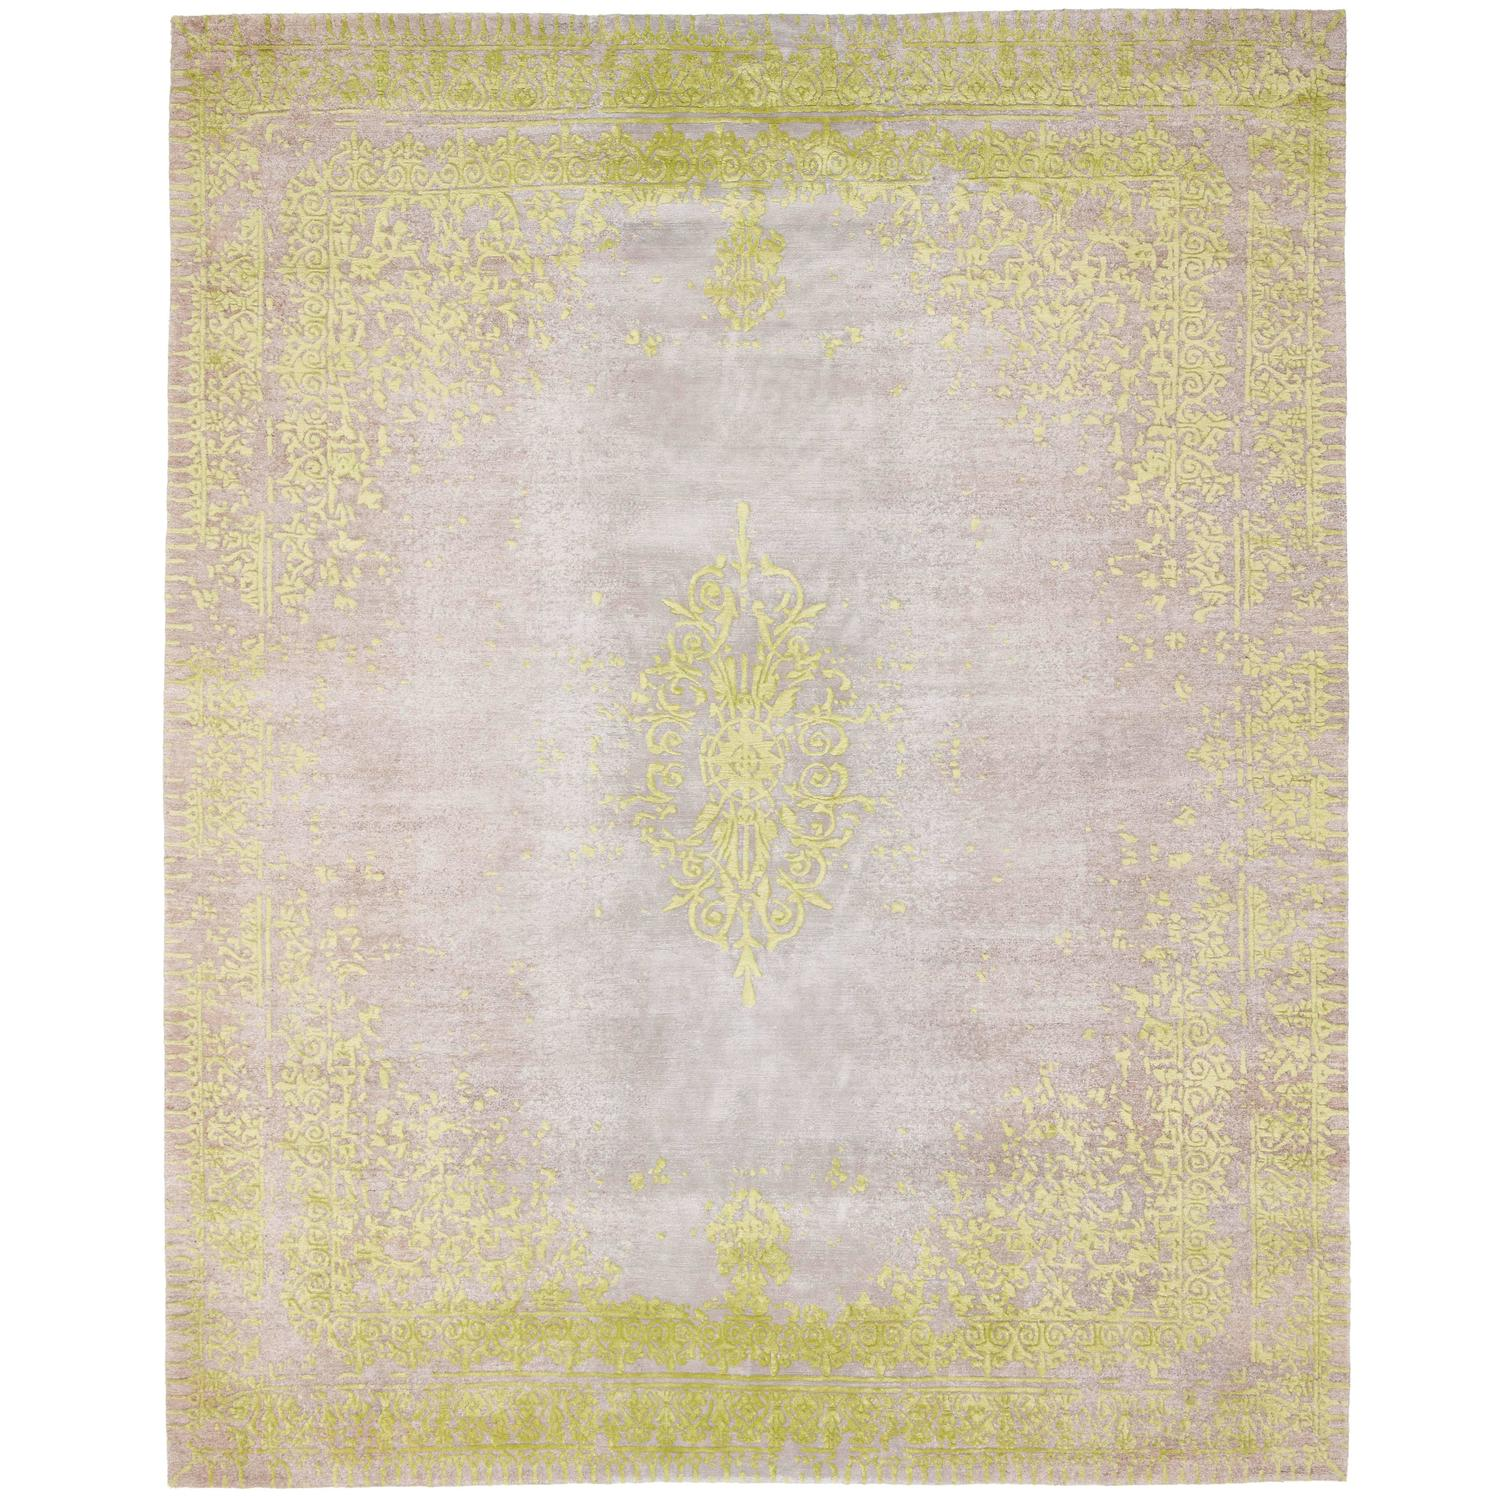 Ferrara Flow Special Rocked From Erased Classic Carpet Collection By Jan Kath For Sale At 1stdibs